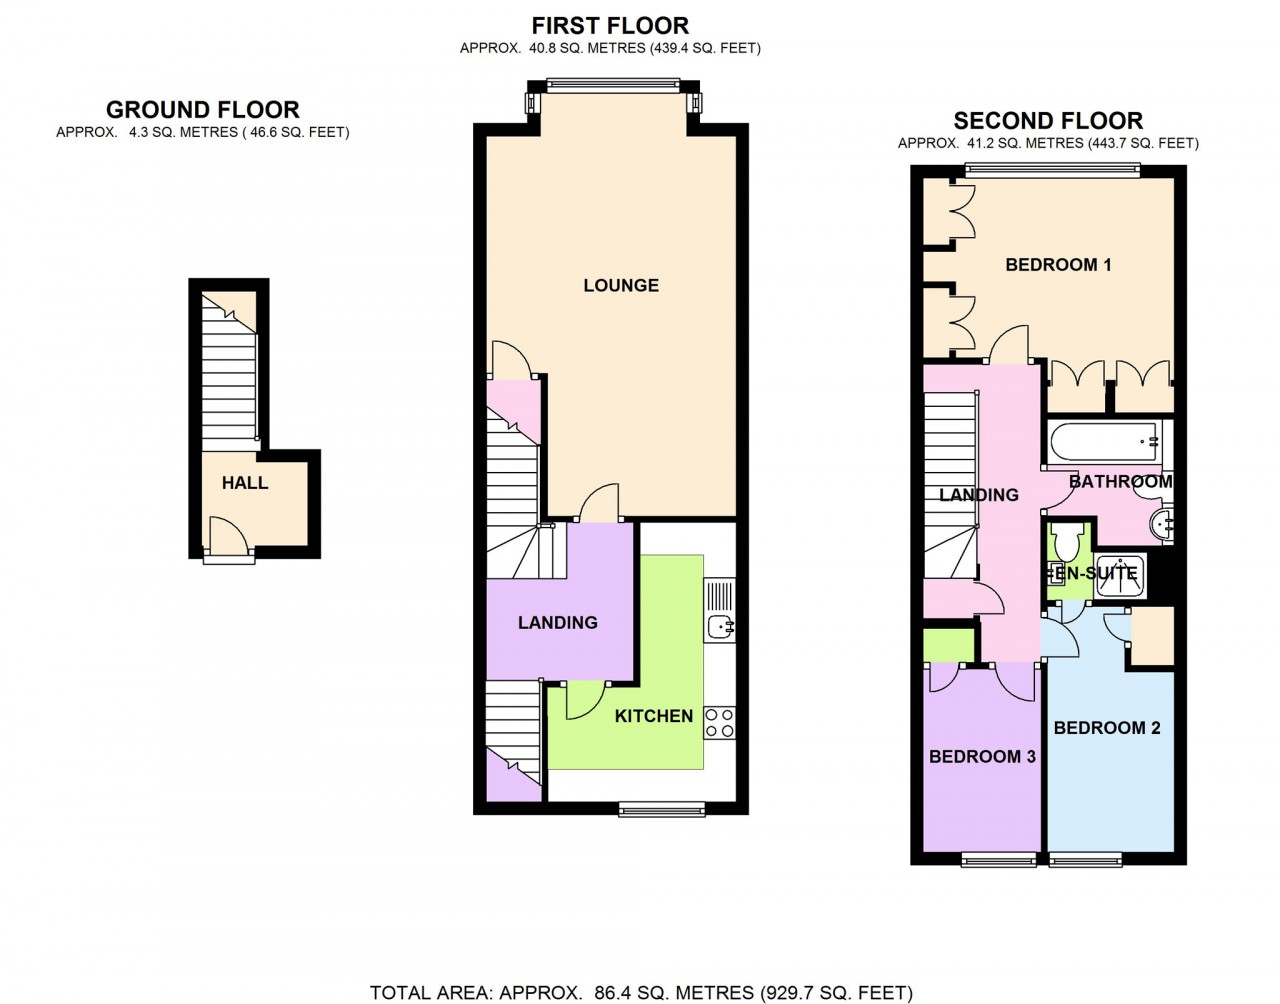 Floor plan the online letting agents ltd for Floor plans for estate agents